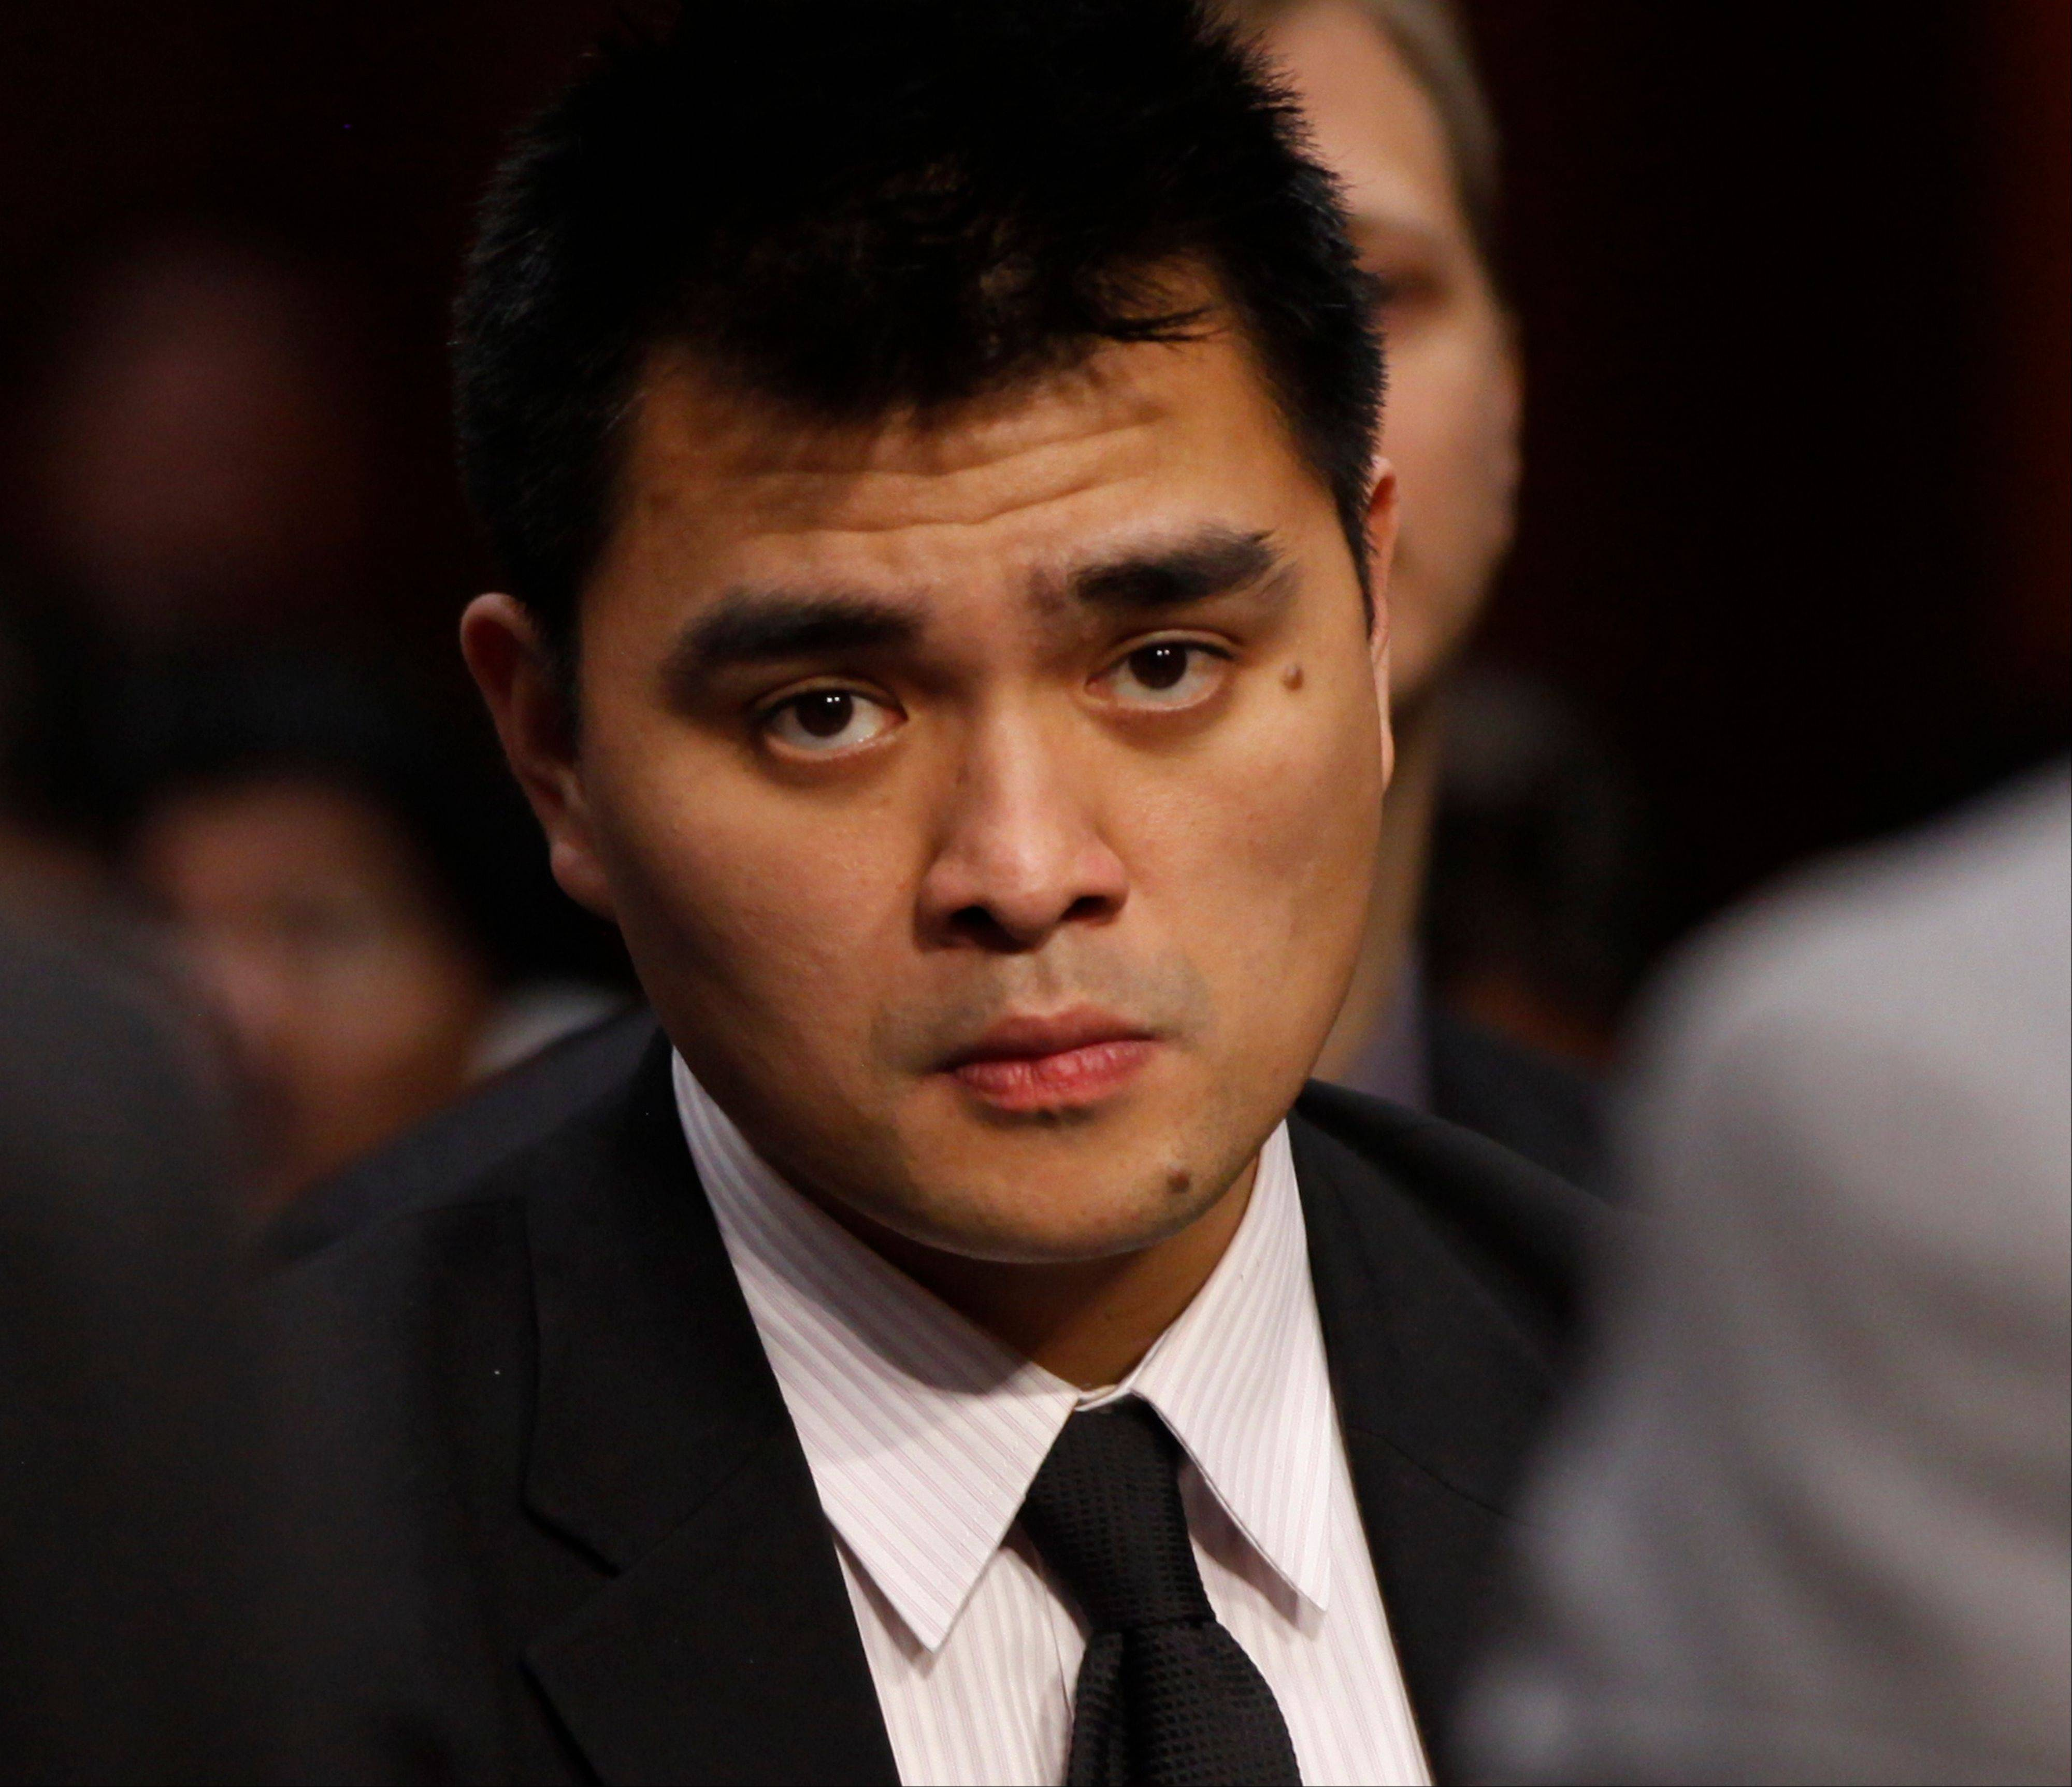 �The priority now is to push a vigorous debate about the undocumented people already here. We want to become citizens and not face the threat of deportation or be treated as second class,� said journalist and immigration reform activist Jose Antonio Vargas.